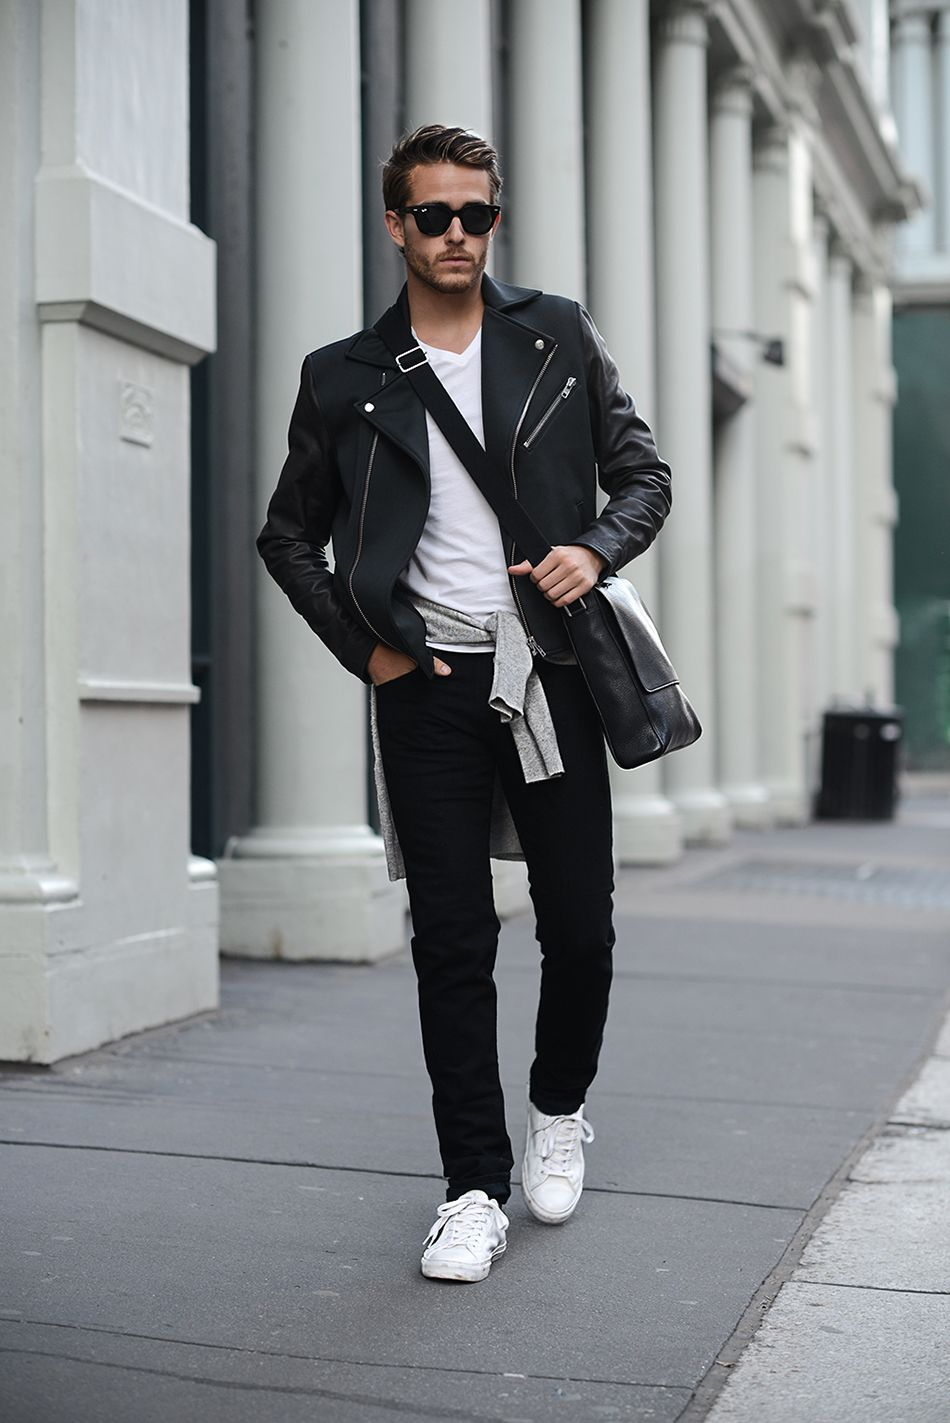 Mens leather gloves topman - Adam Gallagher Topman Leather Neoprene Jacket Club Monaco Cashmere Sweater Aldo Sneakers